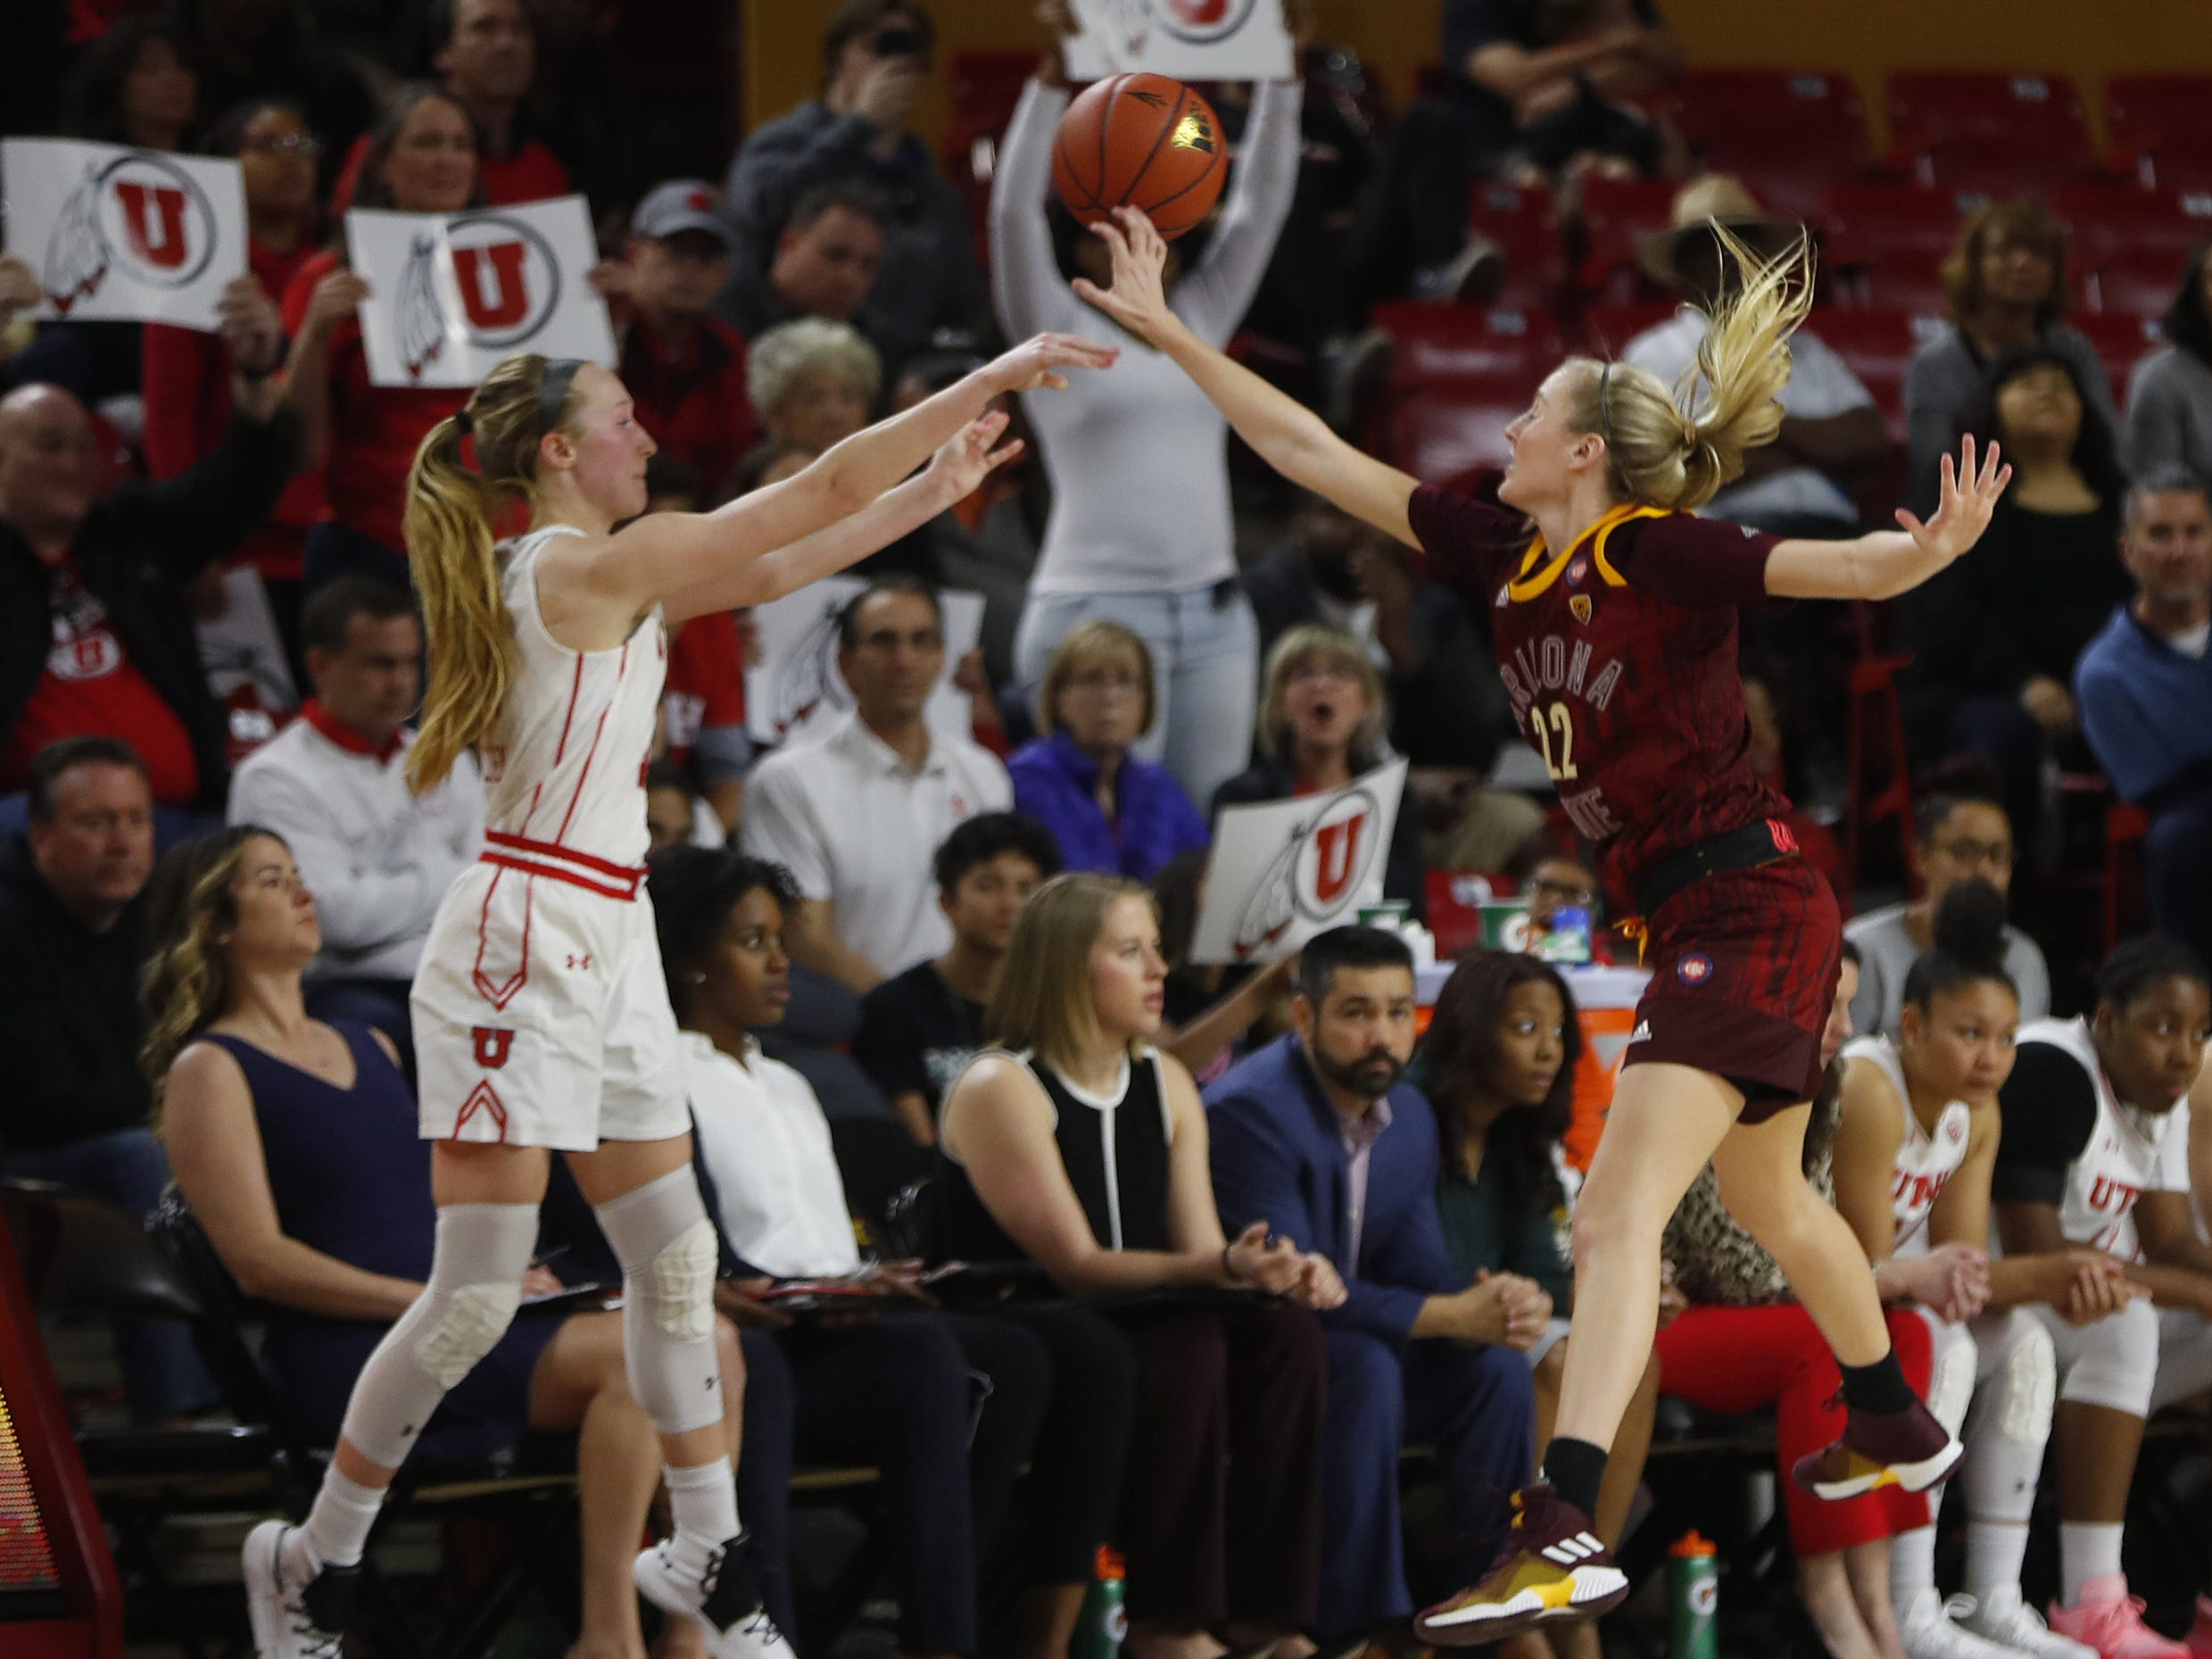 ASU's Courtney Ekmark (22) tips an inbound pass with 0.6 seconds remaining against Utah's Dru Gylten (10) during the second half at Wells Fargo Arena in Tempe, Ariz. on February 17, 2019.